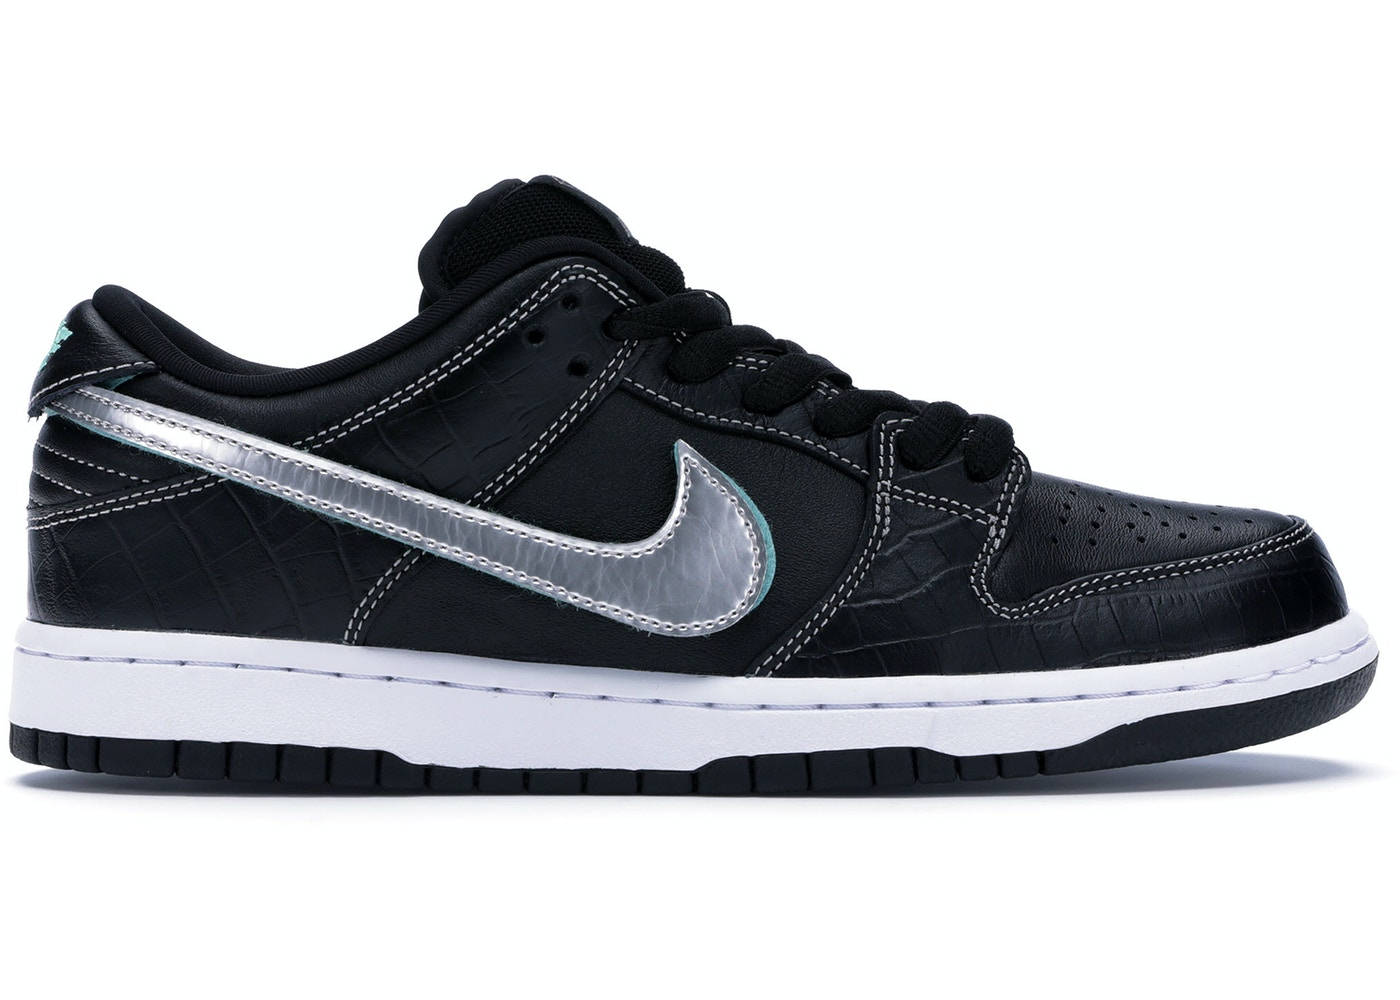 0488fbaf76d9 Nike SB Dunk Low Diamond Supply Co Black Diamond - BV1310-001